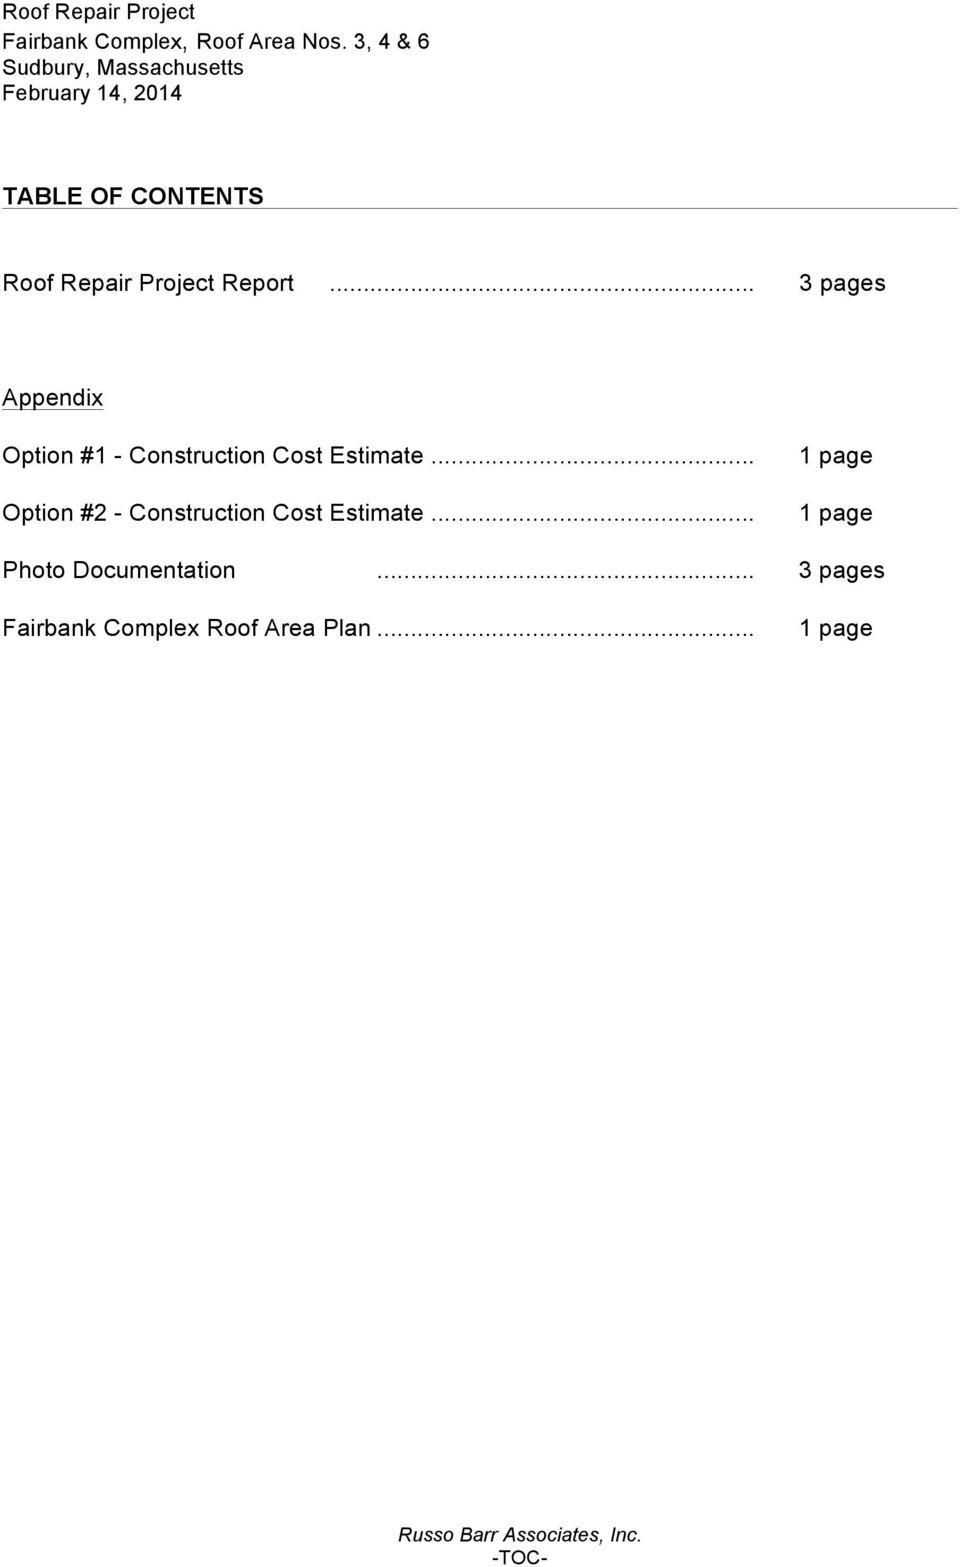 .. Option #2 - Construction Cost Estimate.